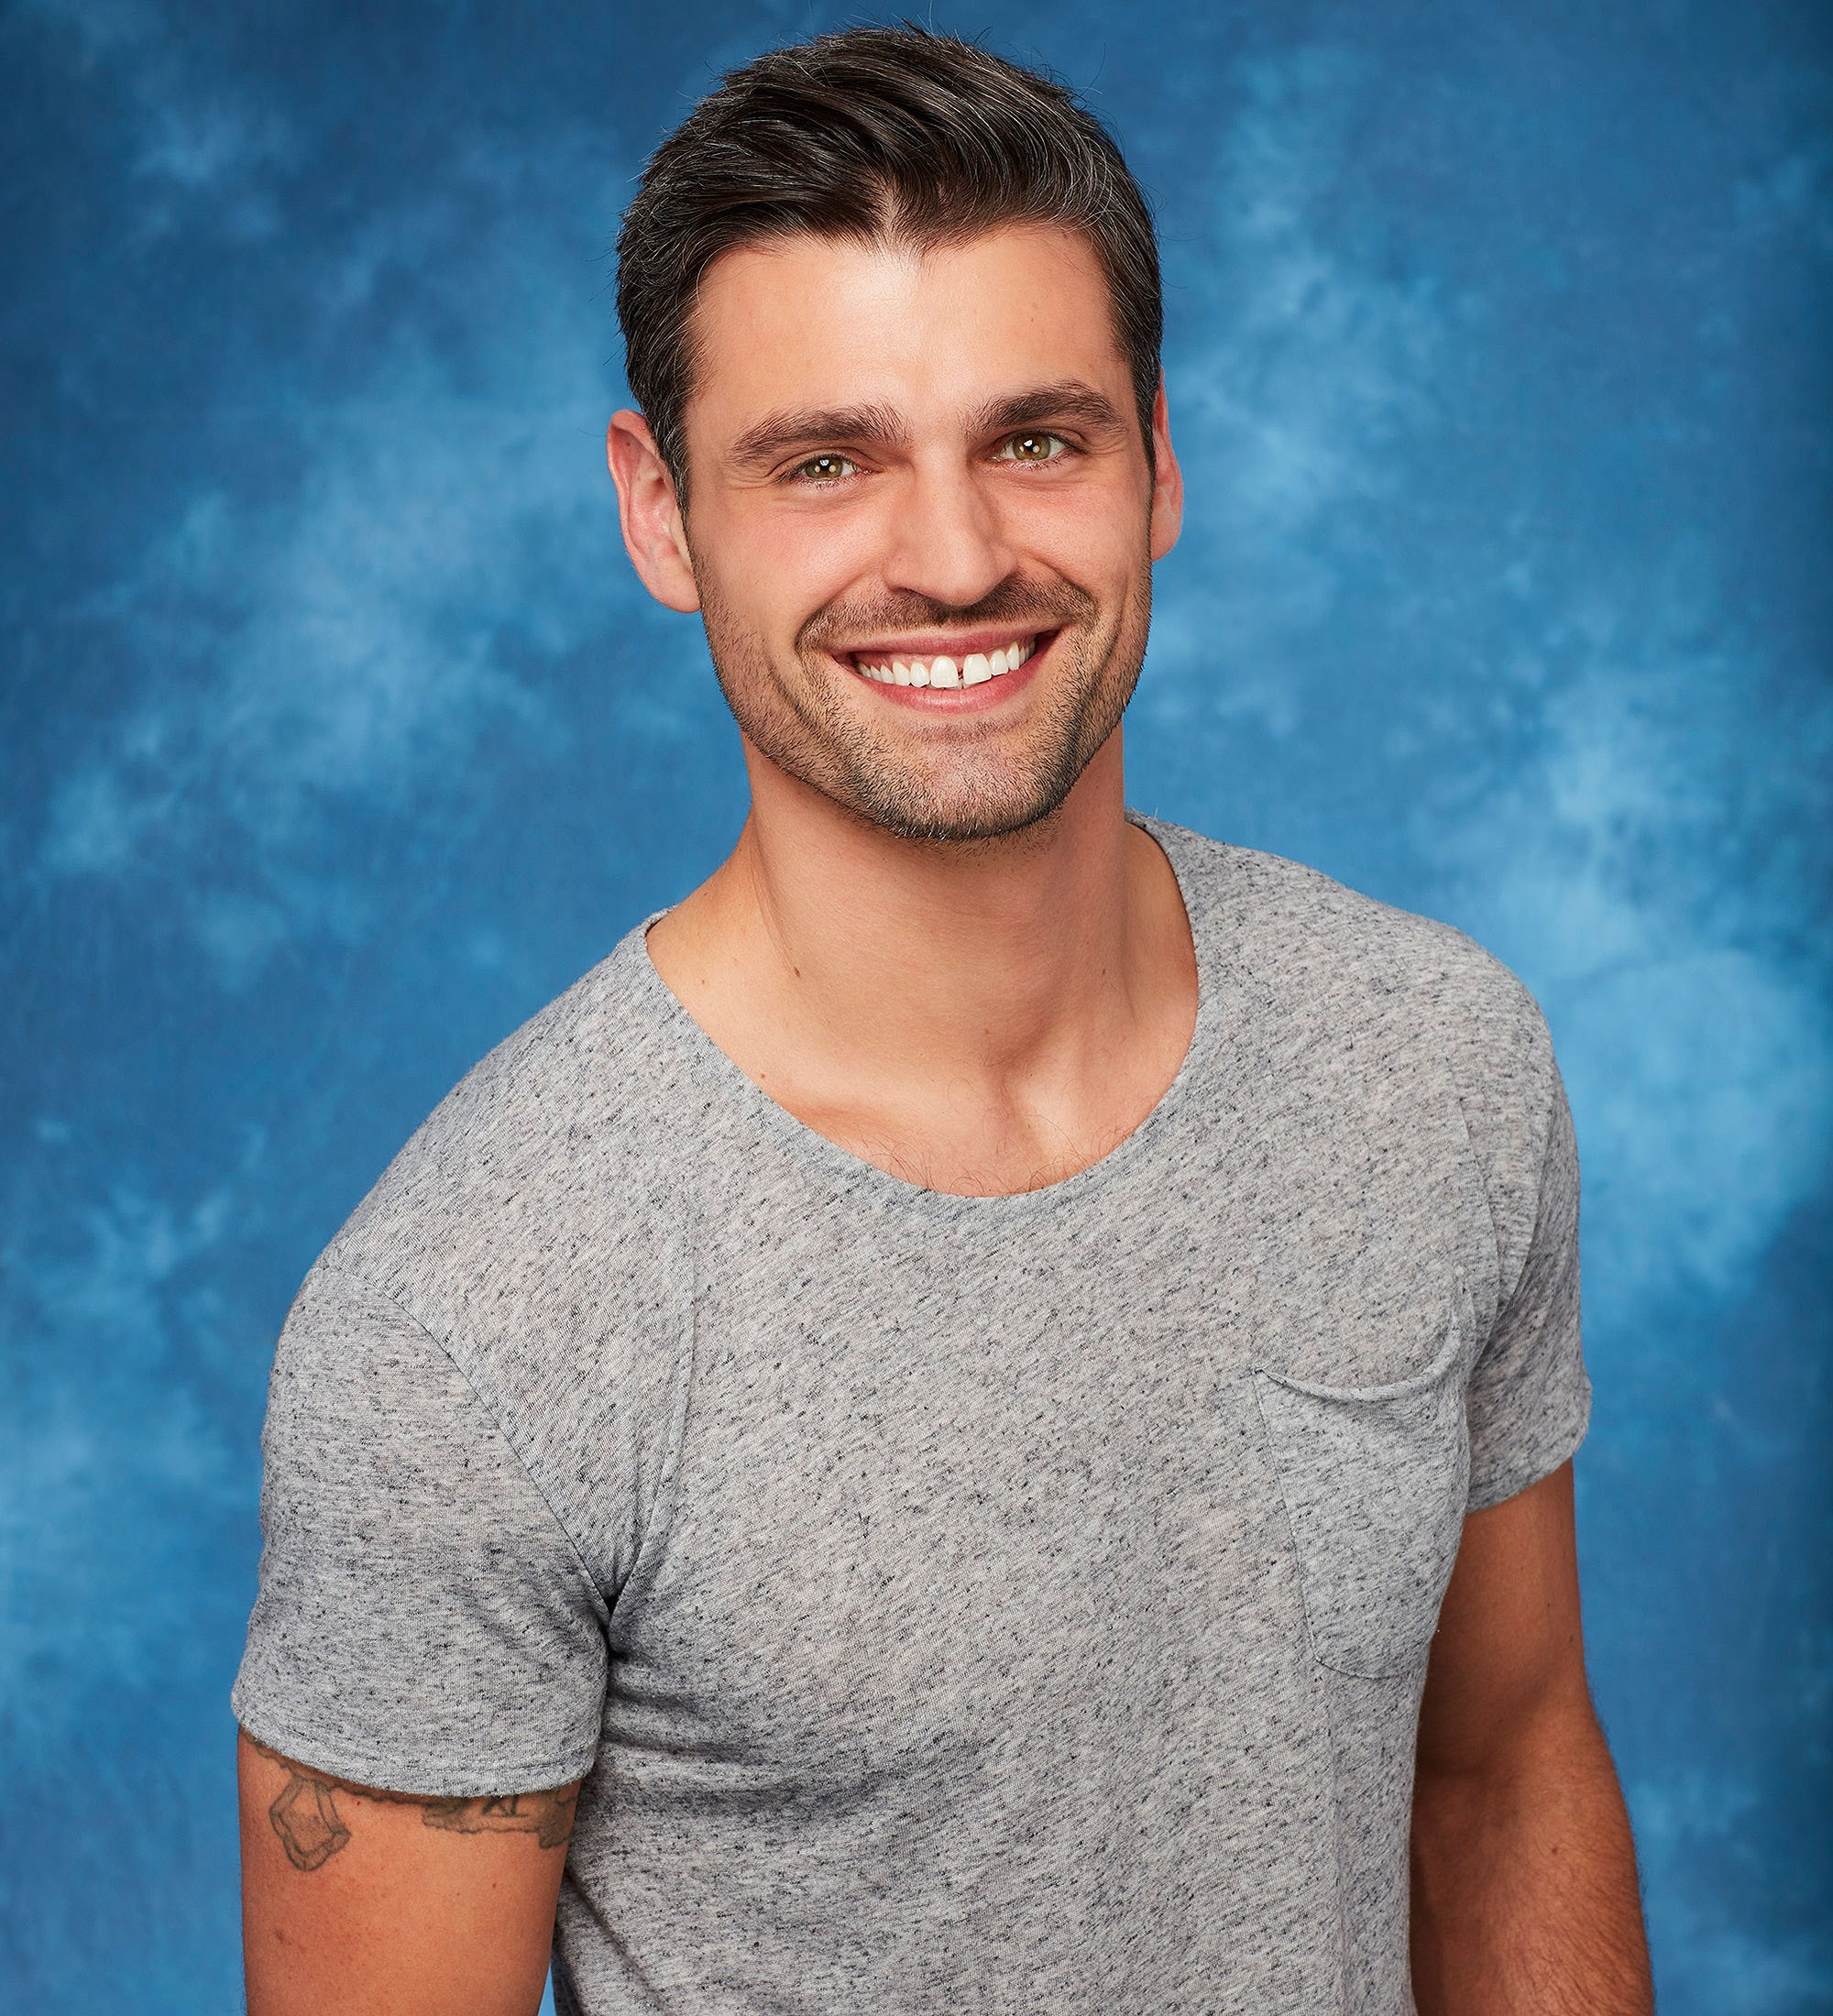 'The Bachelorette' hands out final rose, receives backlash from fans